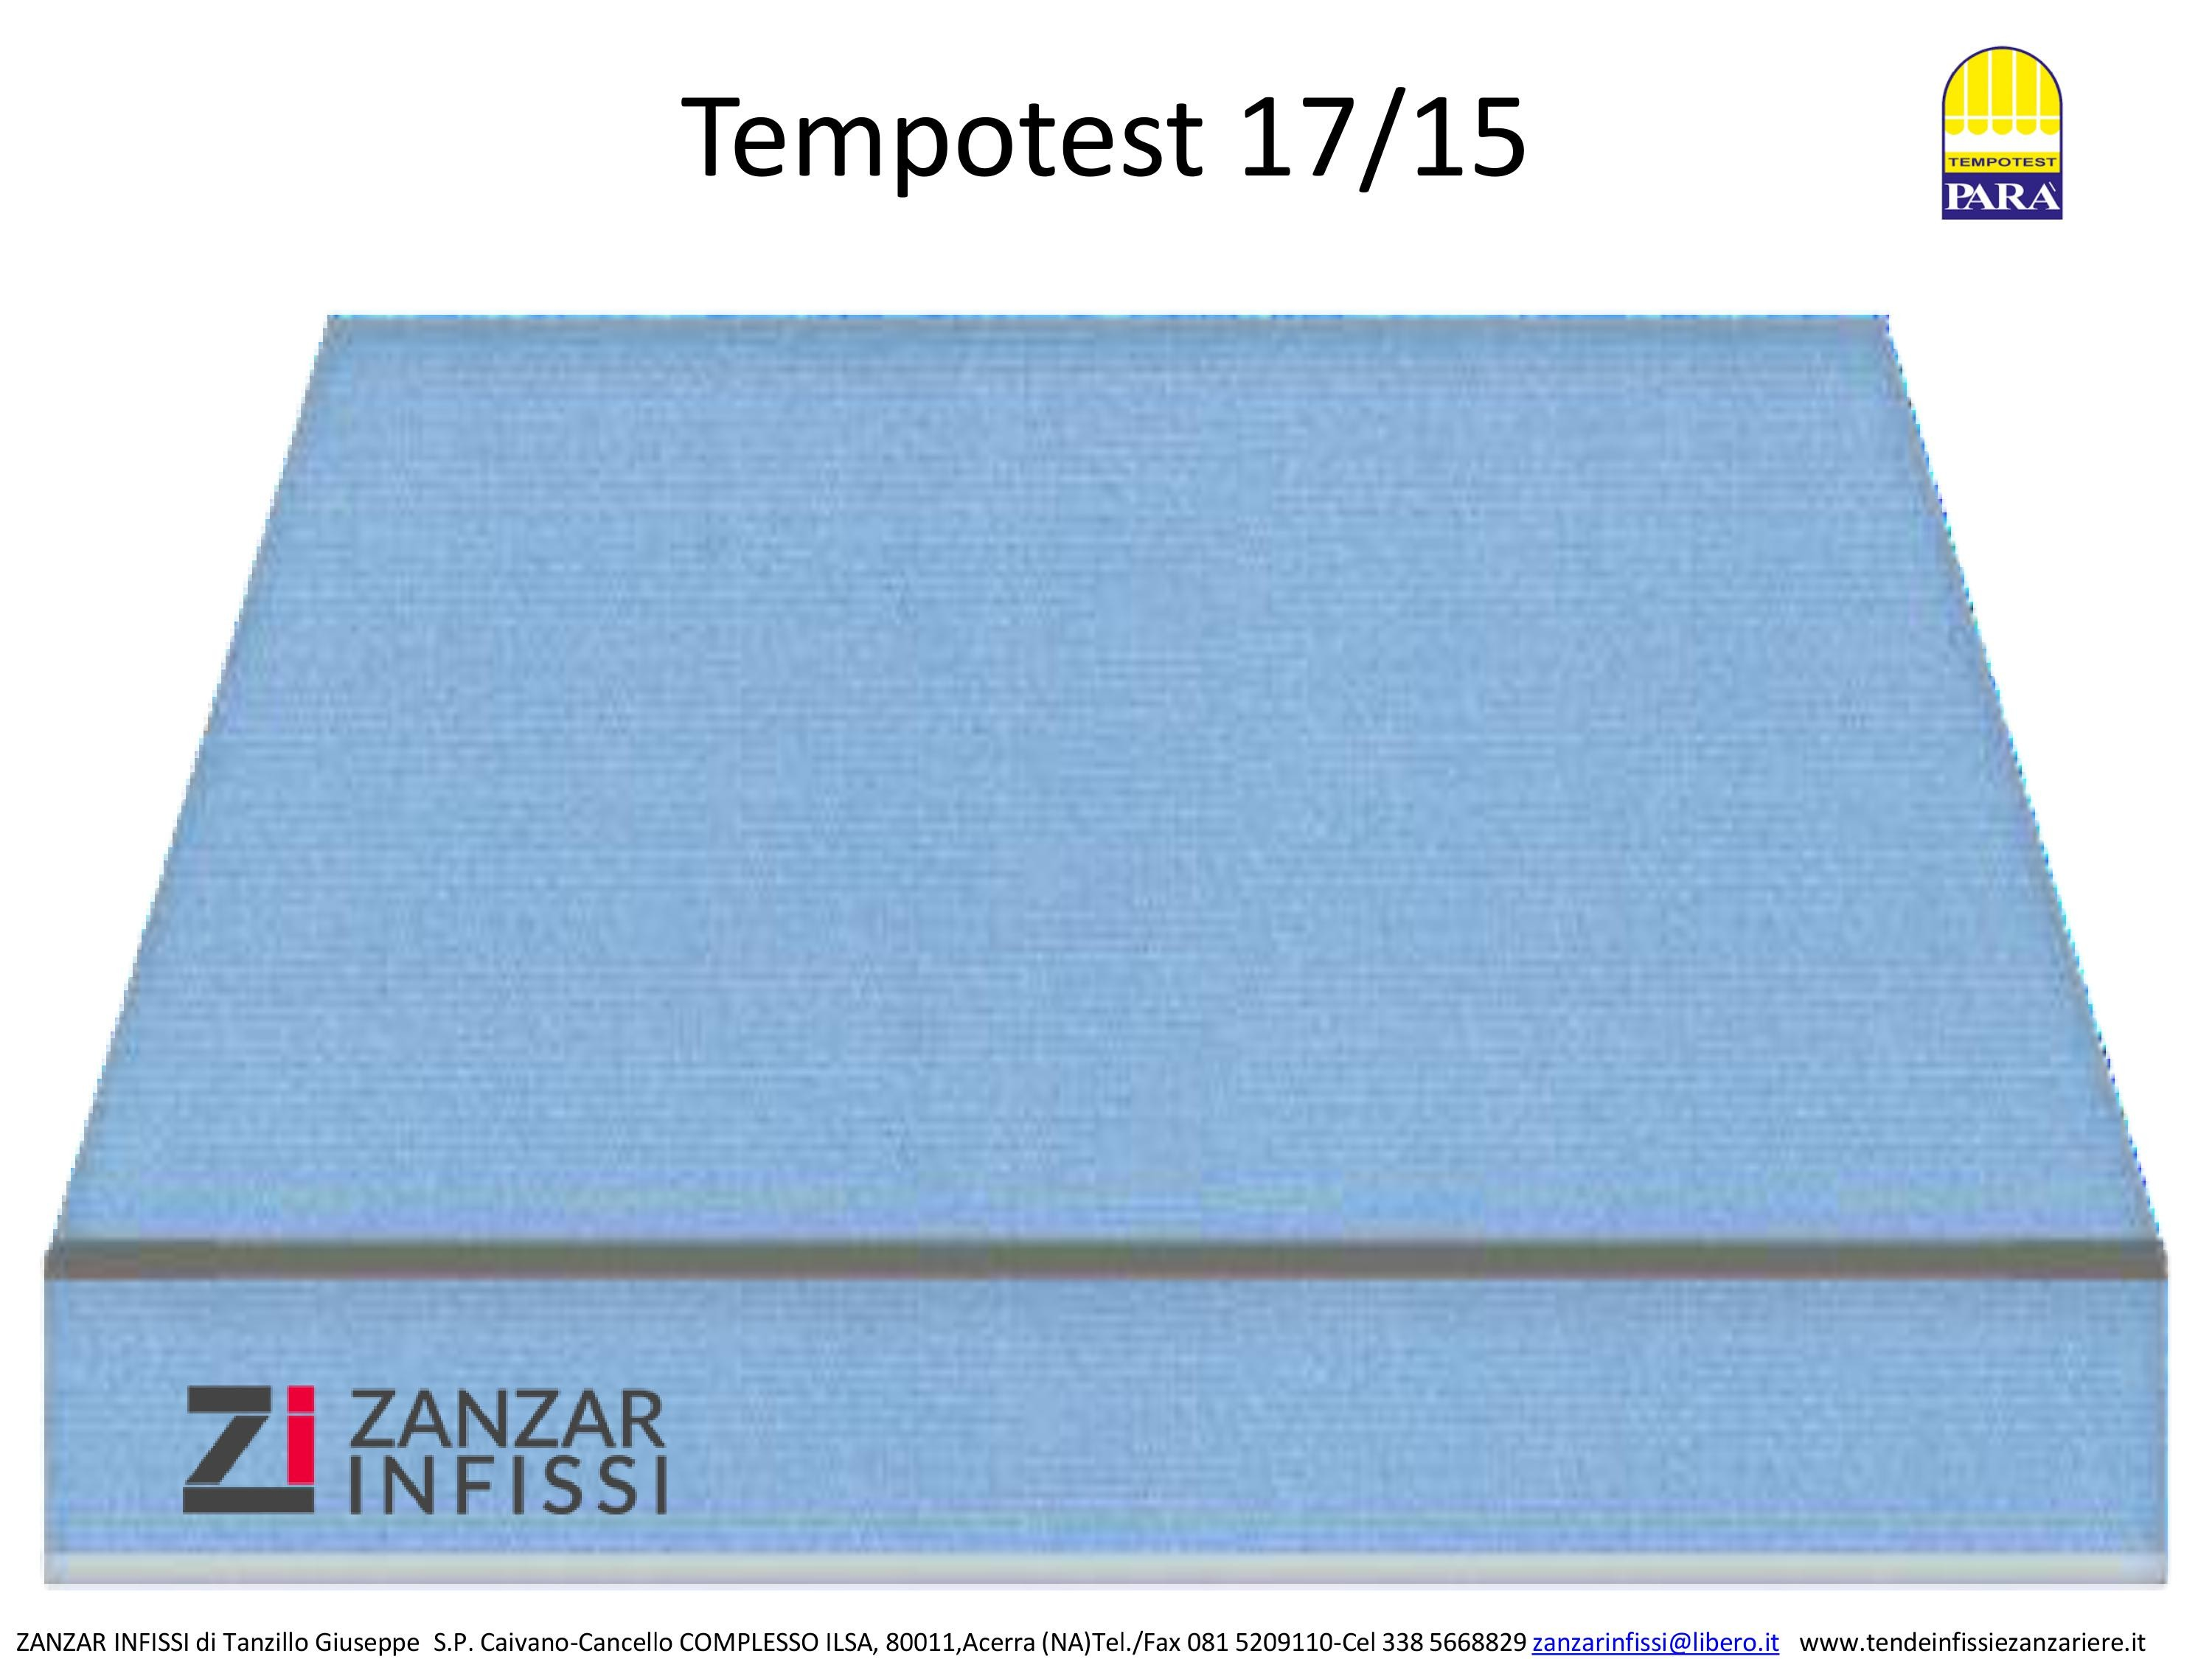 Tempotest 17/15